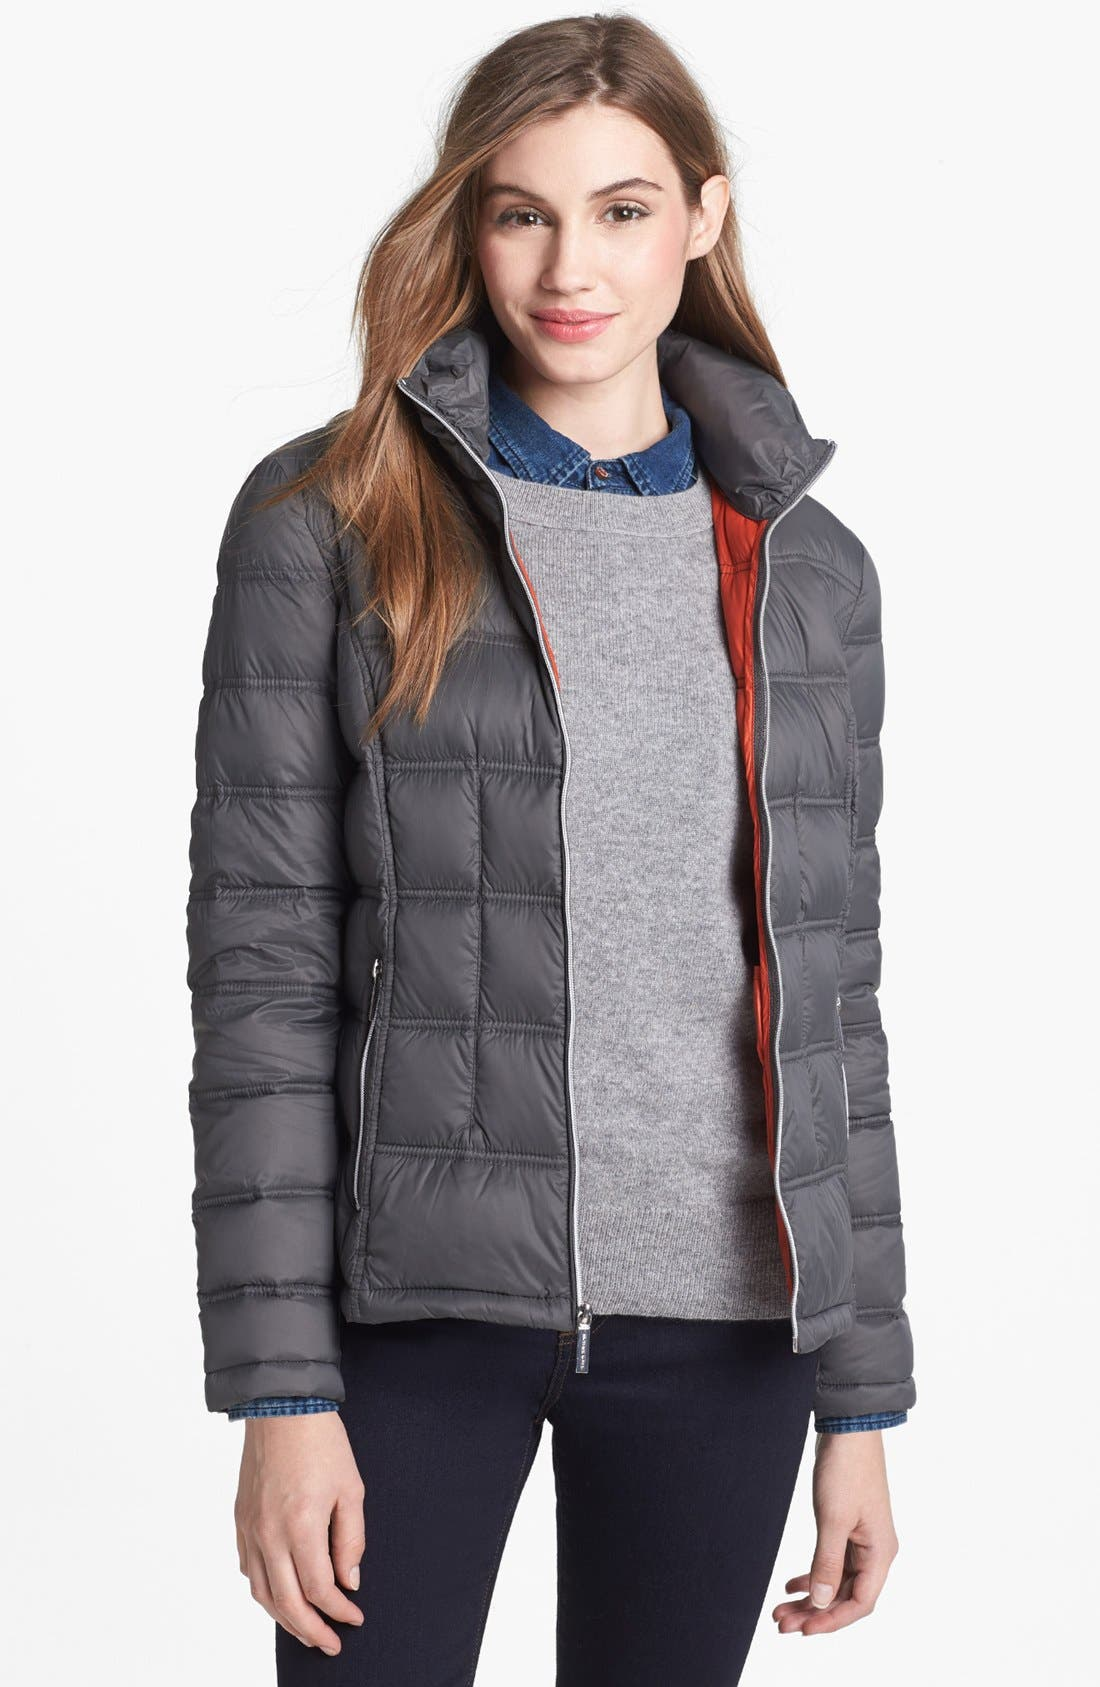 Alternate Image 1 Selected - MICHAEL Michael Kors Packable Down Jacket with Detachable Hood (Petite) (Online Only)